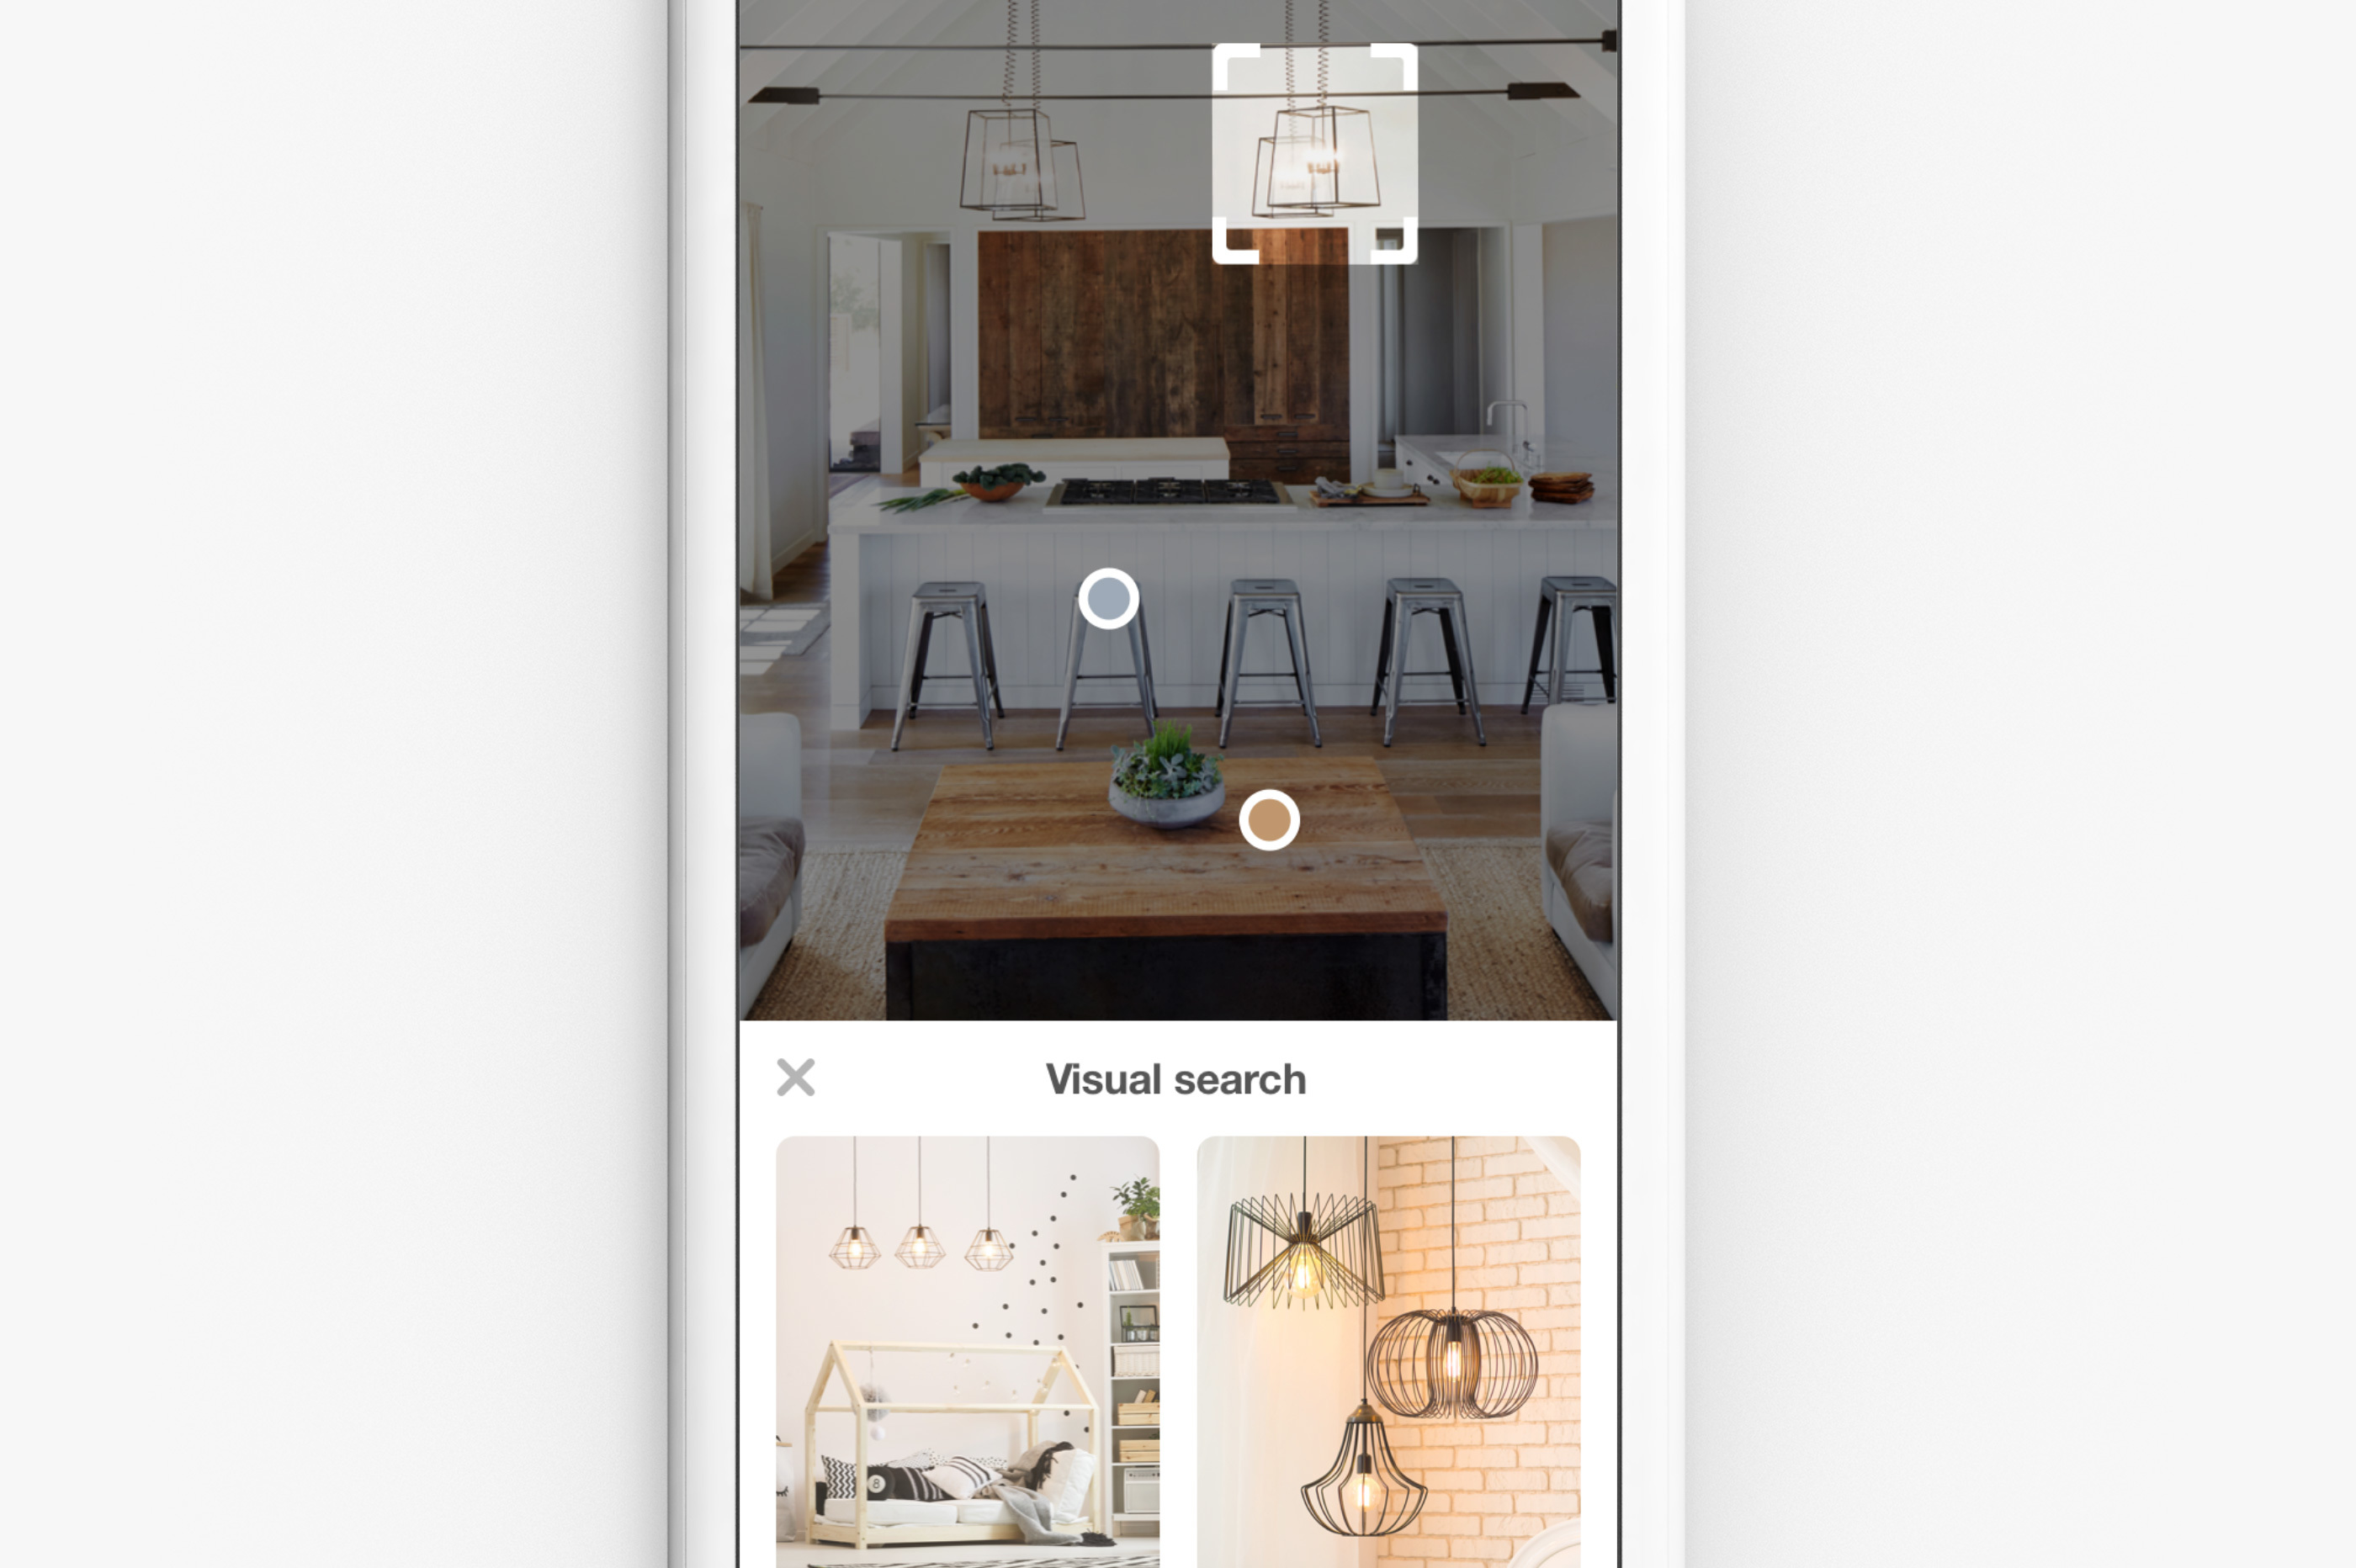 pinterest, visual search, living room